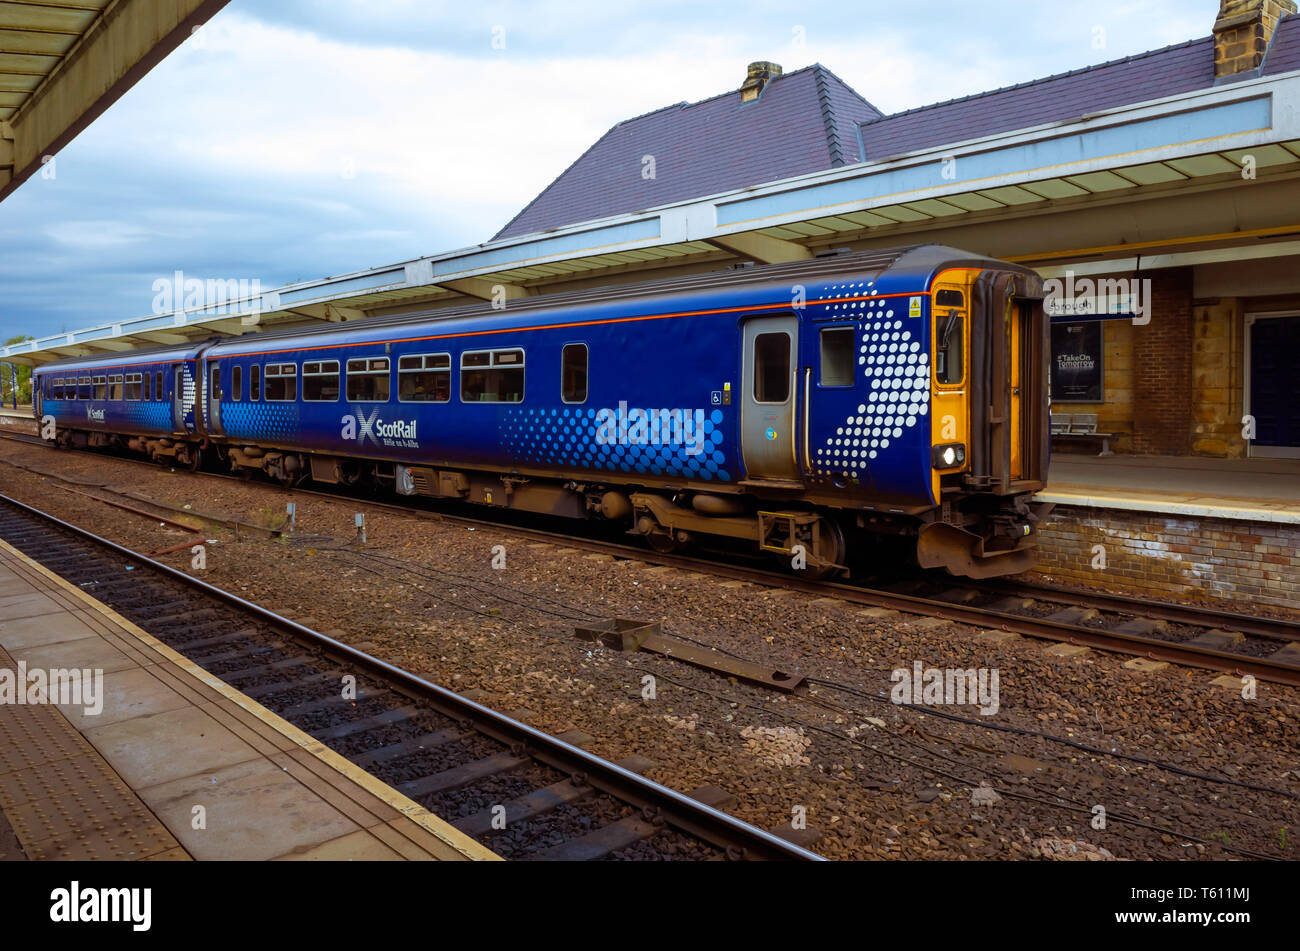 A 2-car DMU Scot Rail train in Middlesbrough Station about to depart on an eastbound service - Stock Image